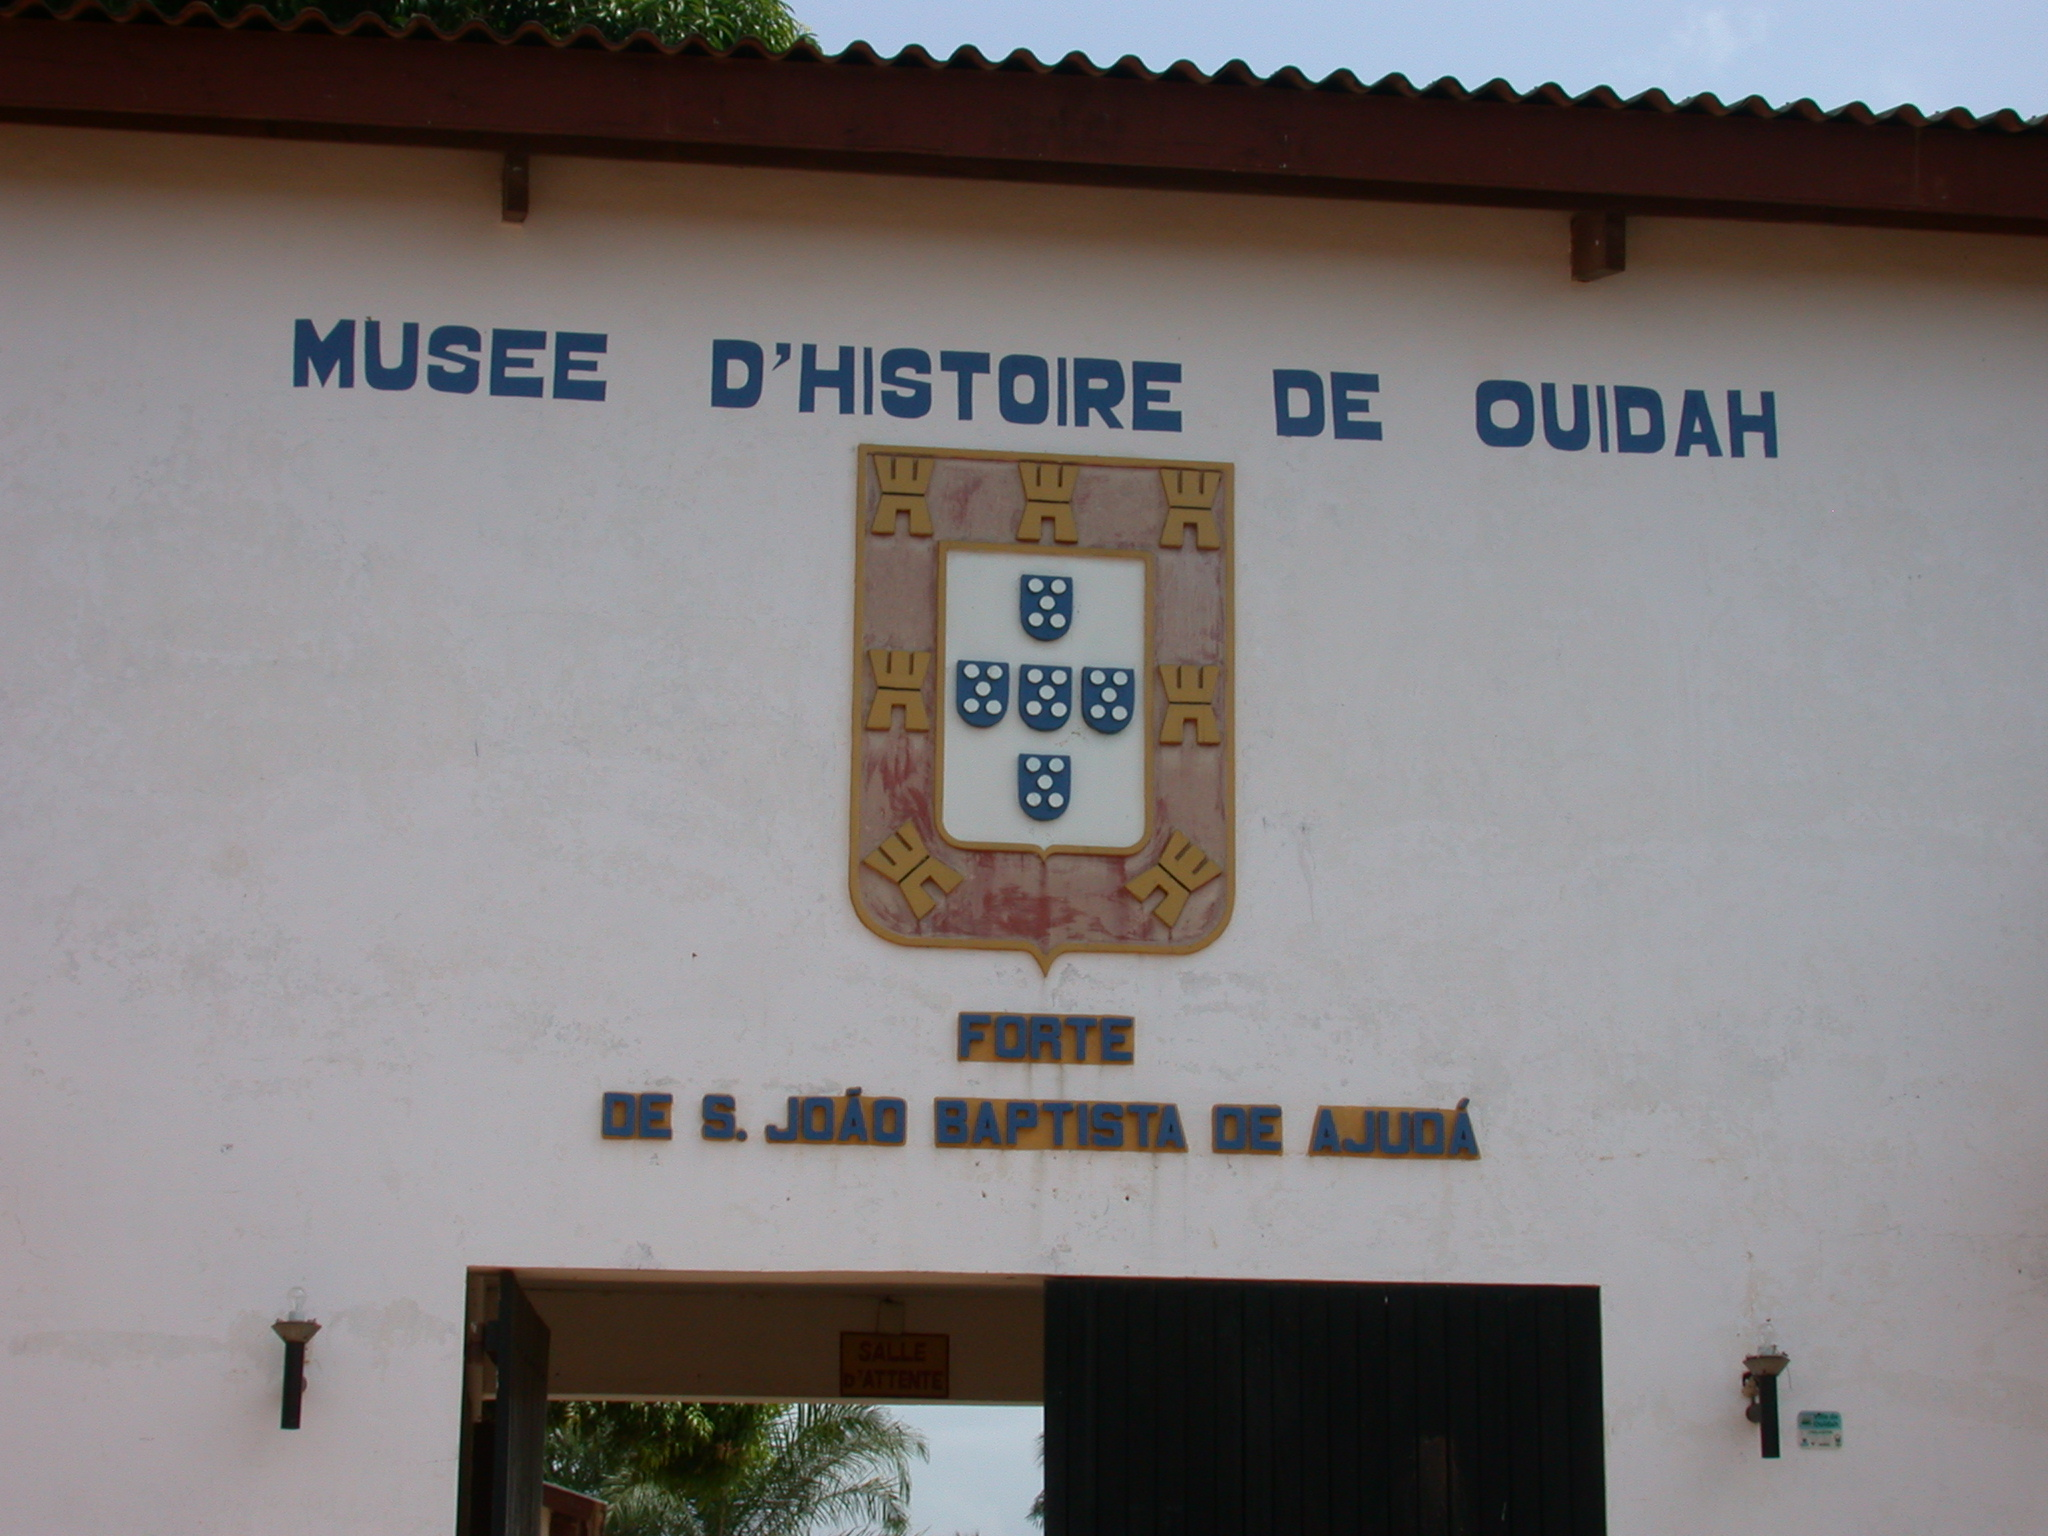 Entrance Sign for Ouidah History Museum, Muse d Histoire de Ouidah